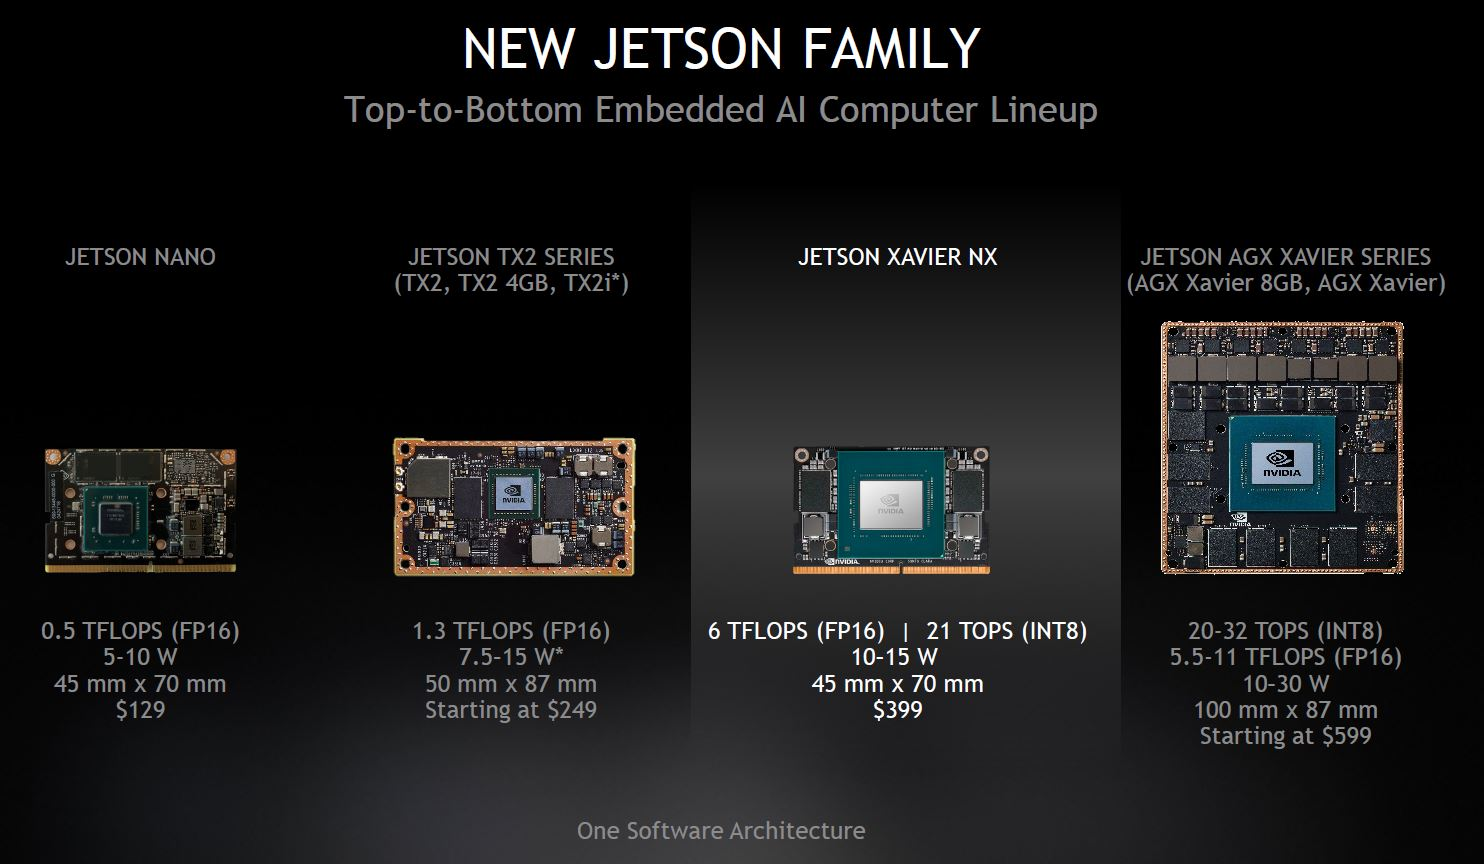 NVIDIA Jetson Xavier NX And New Jetson Family